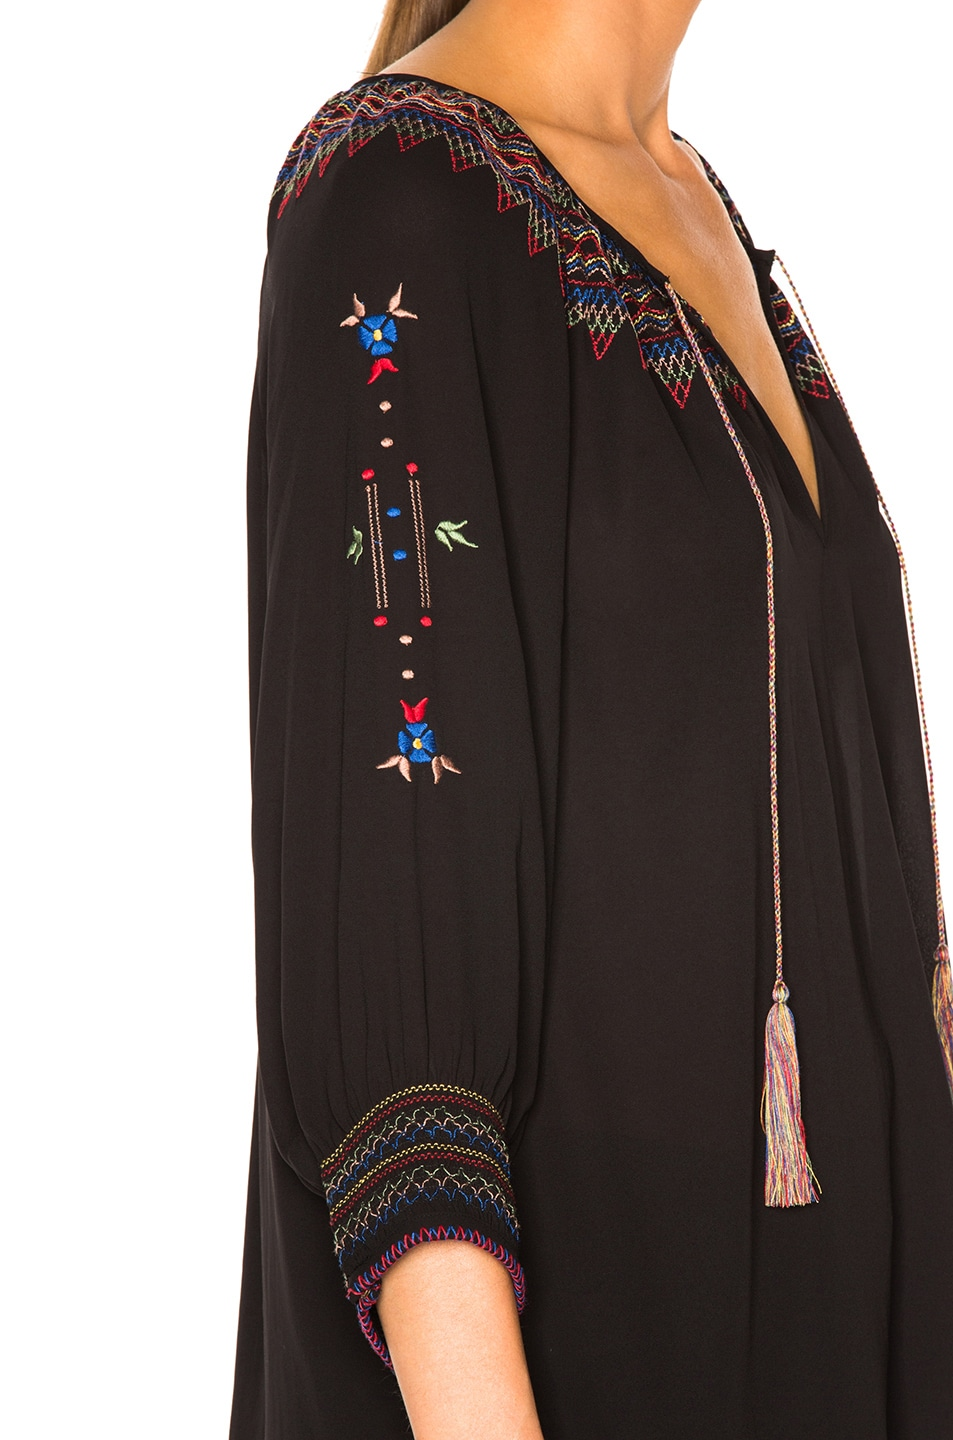 Image 6 of The Great Promenade Top in Black